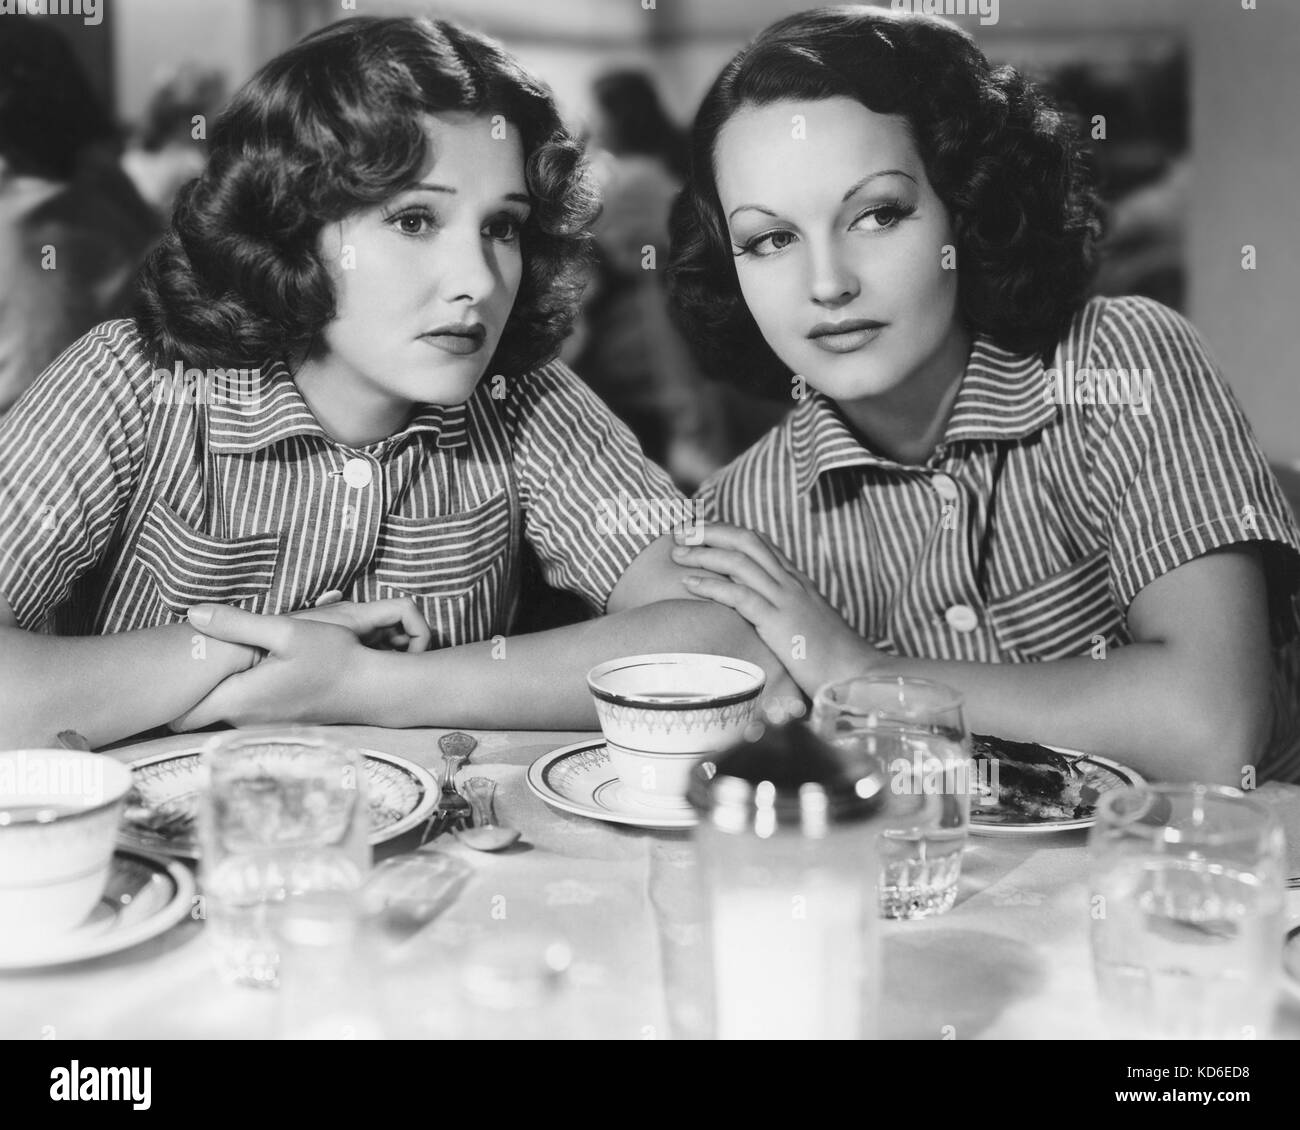 CONVICTED WOMAN 1940 Columbia Pictures film with  Rochelle Hudson at left and Lola Lane - Stock Image